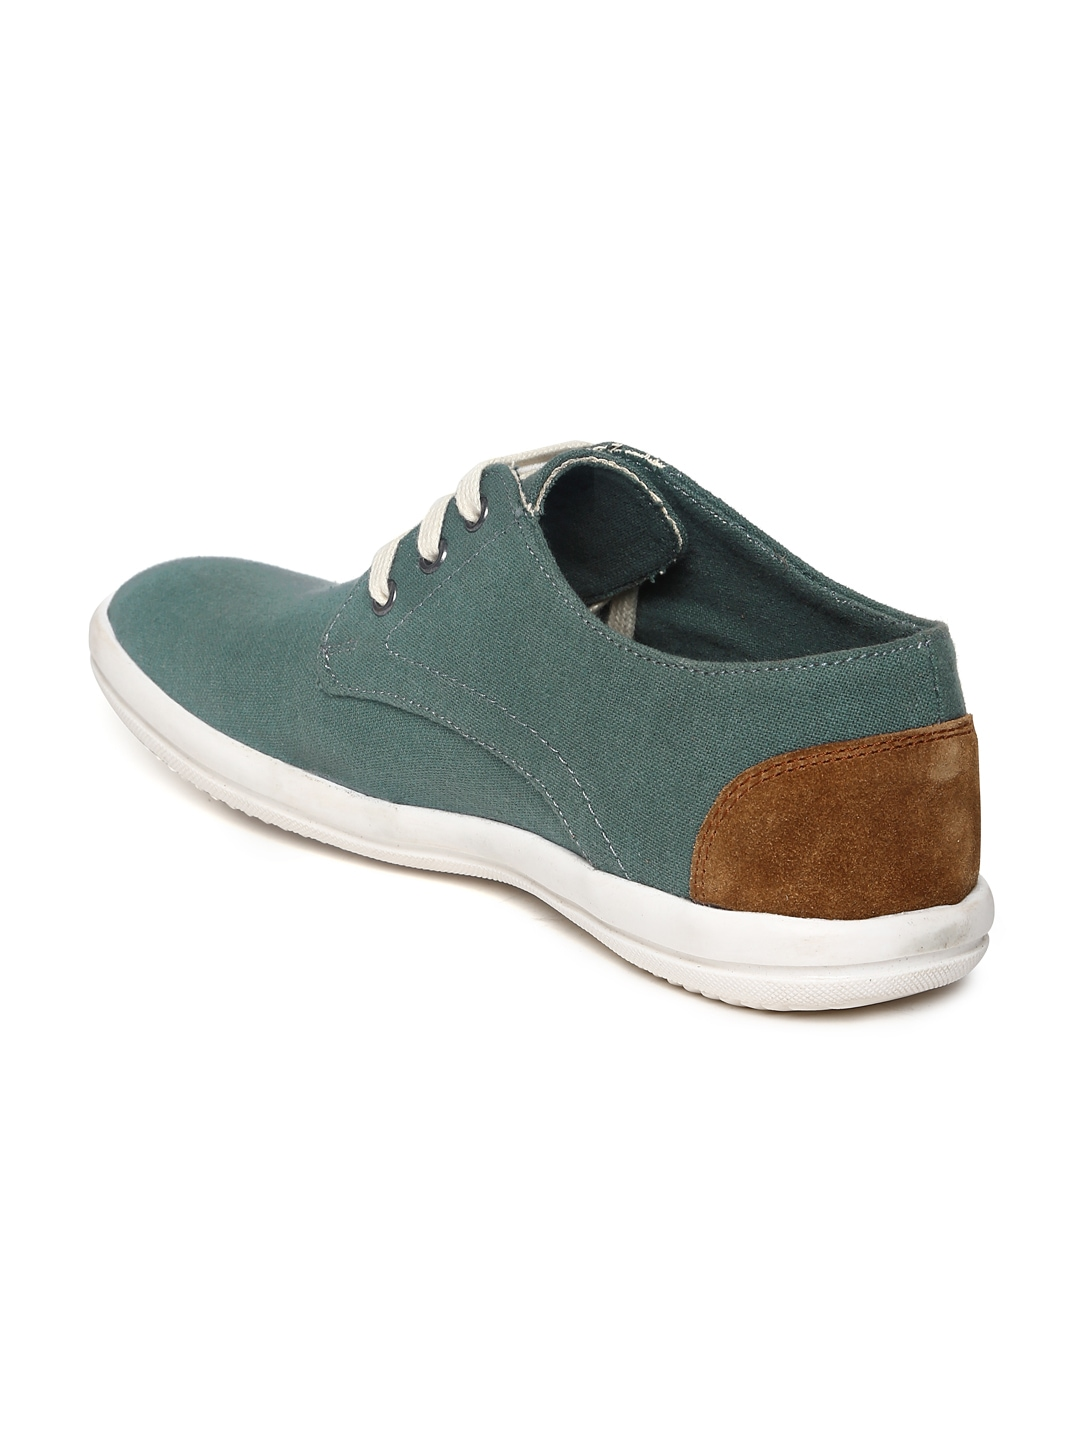 myntra provogue teal green canvas shoes 444000 buy